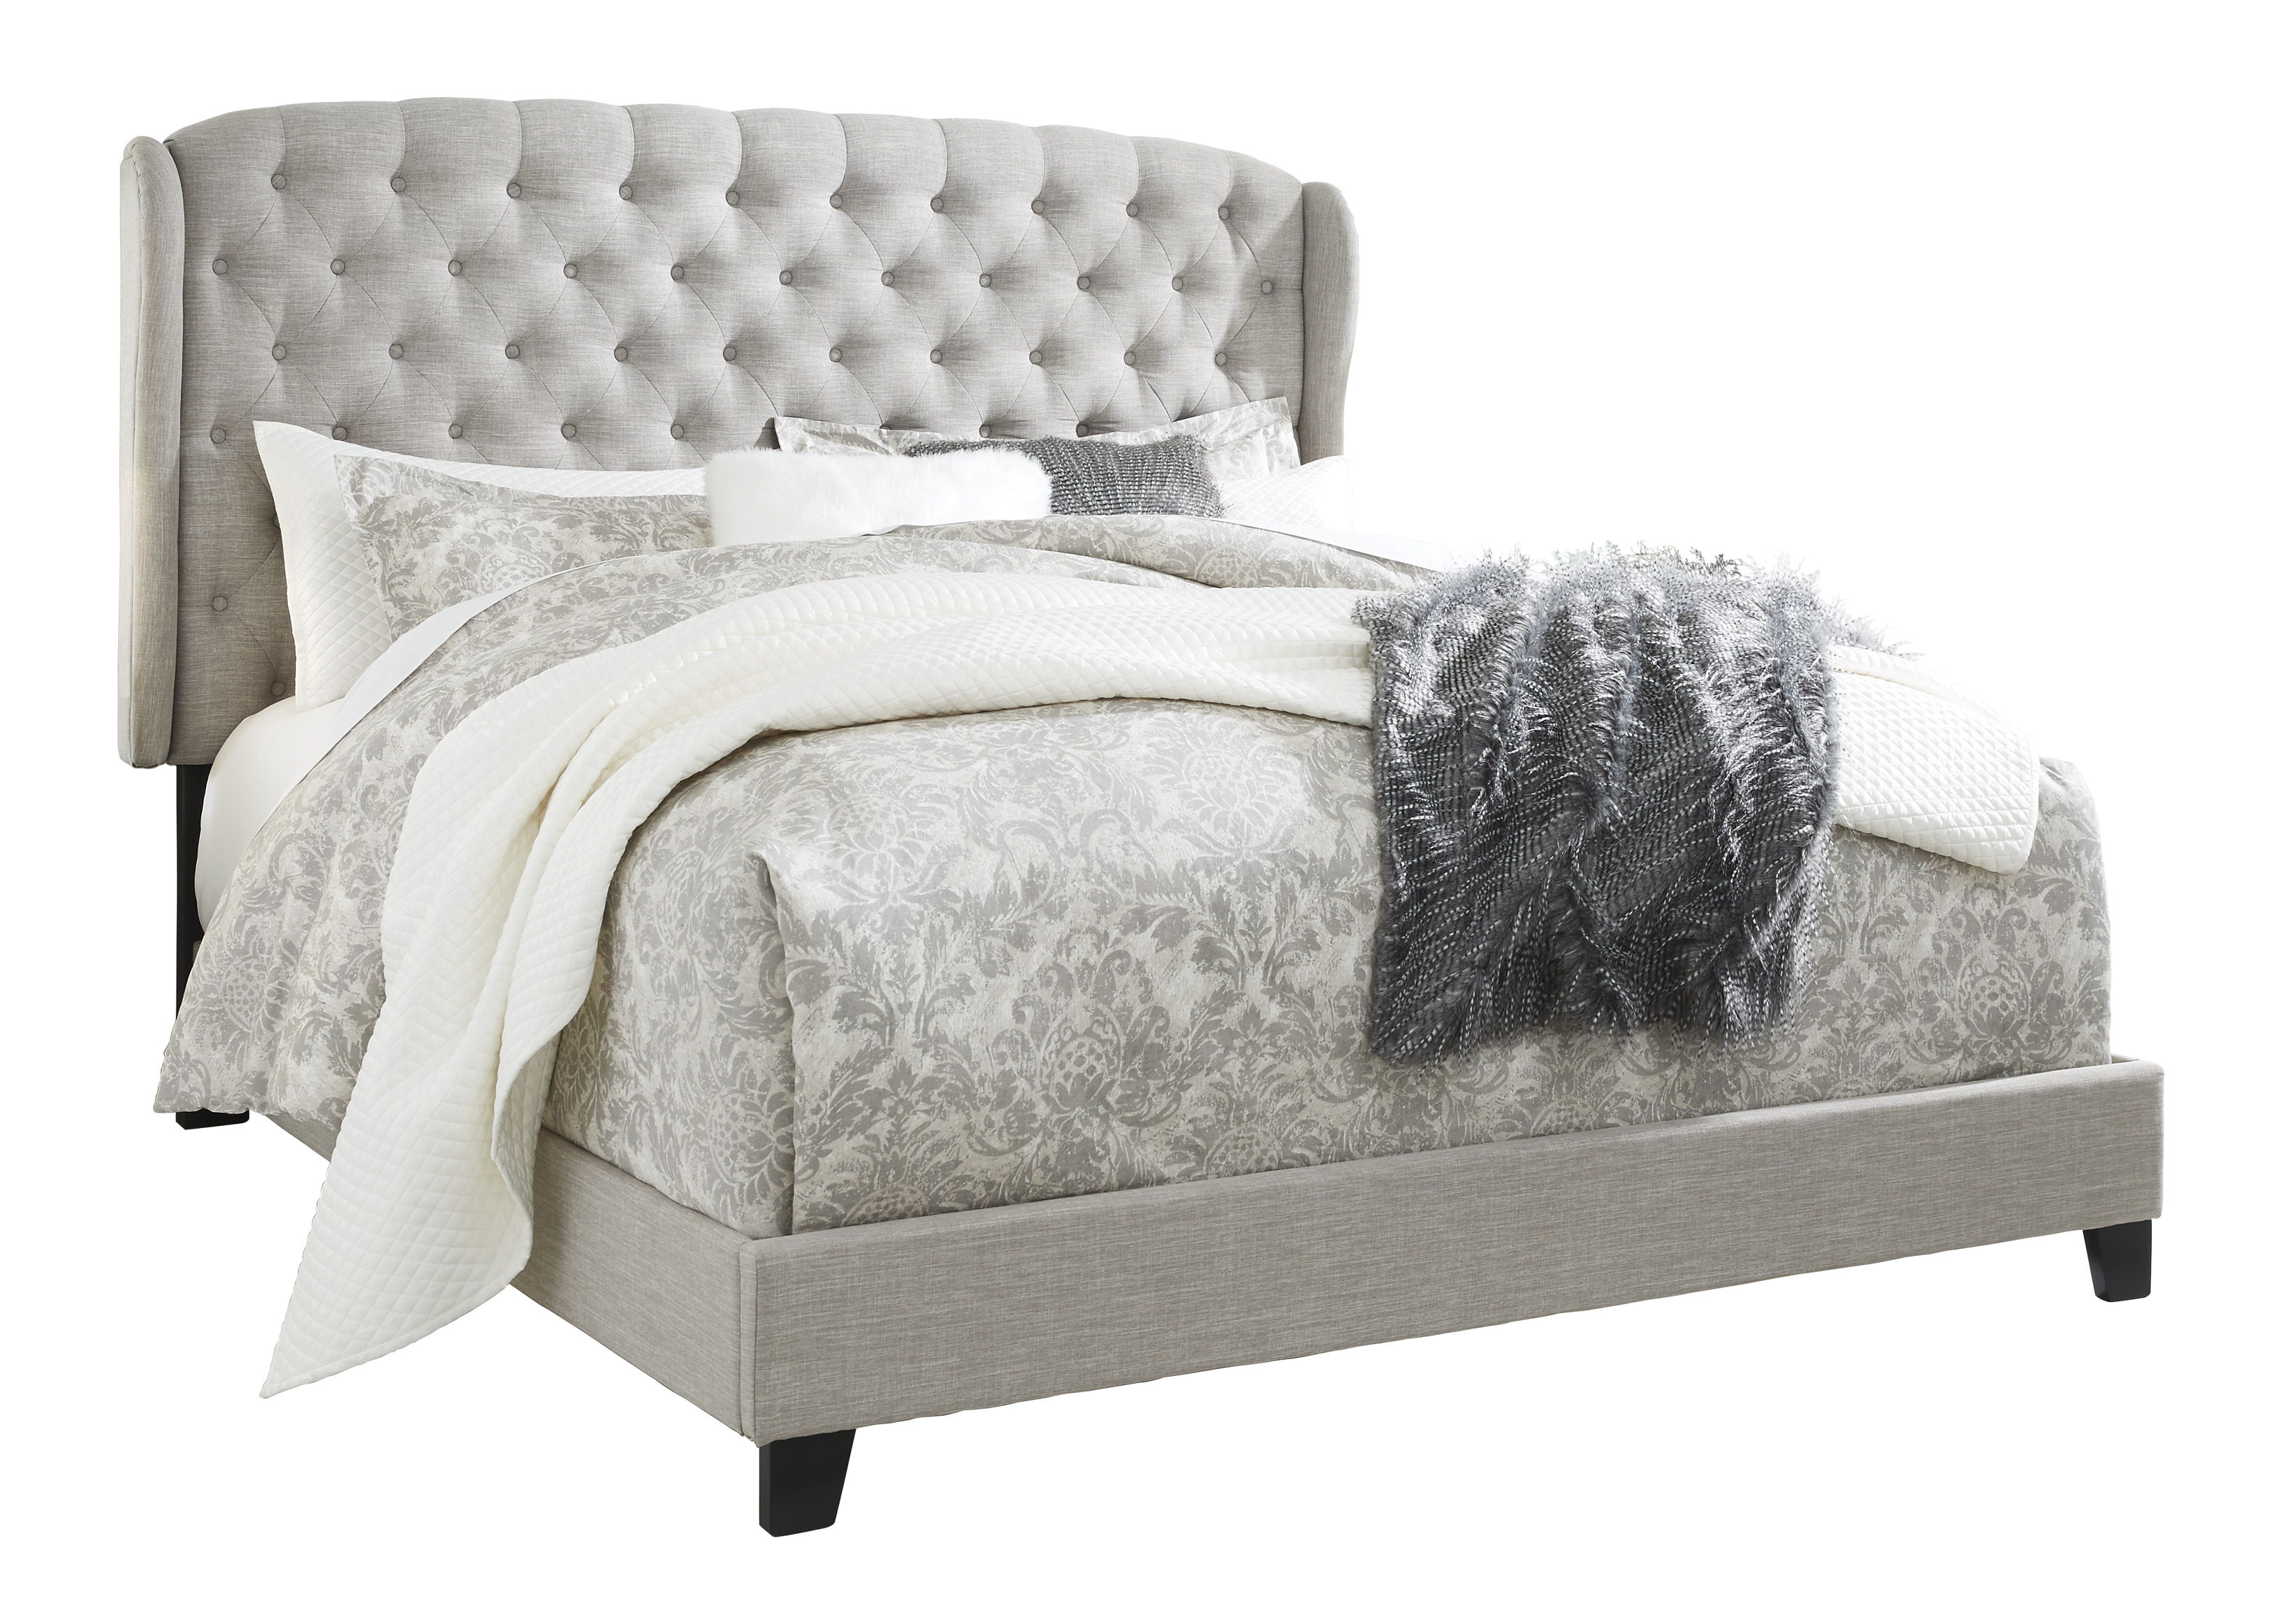 Ashley Furniture Jerary Gray Queen Upholstered Tufted Bed The